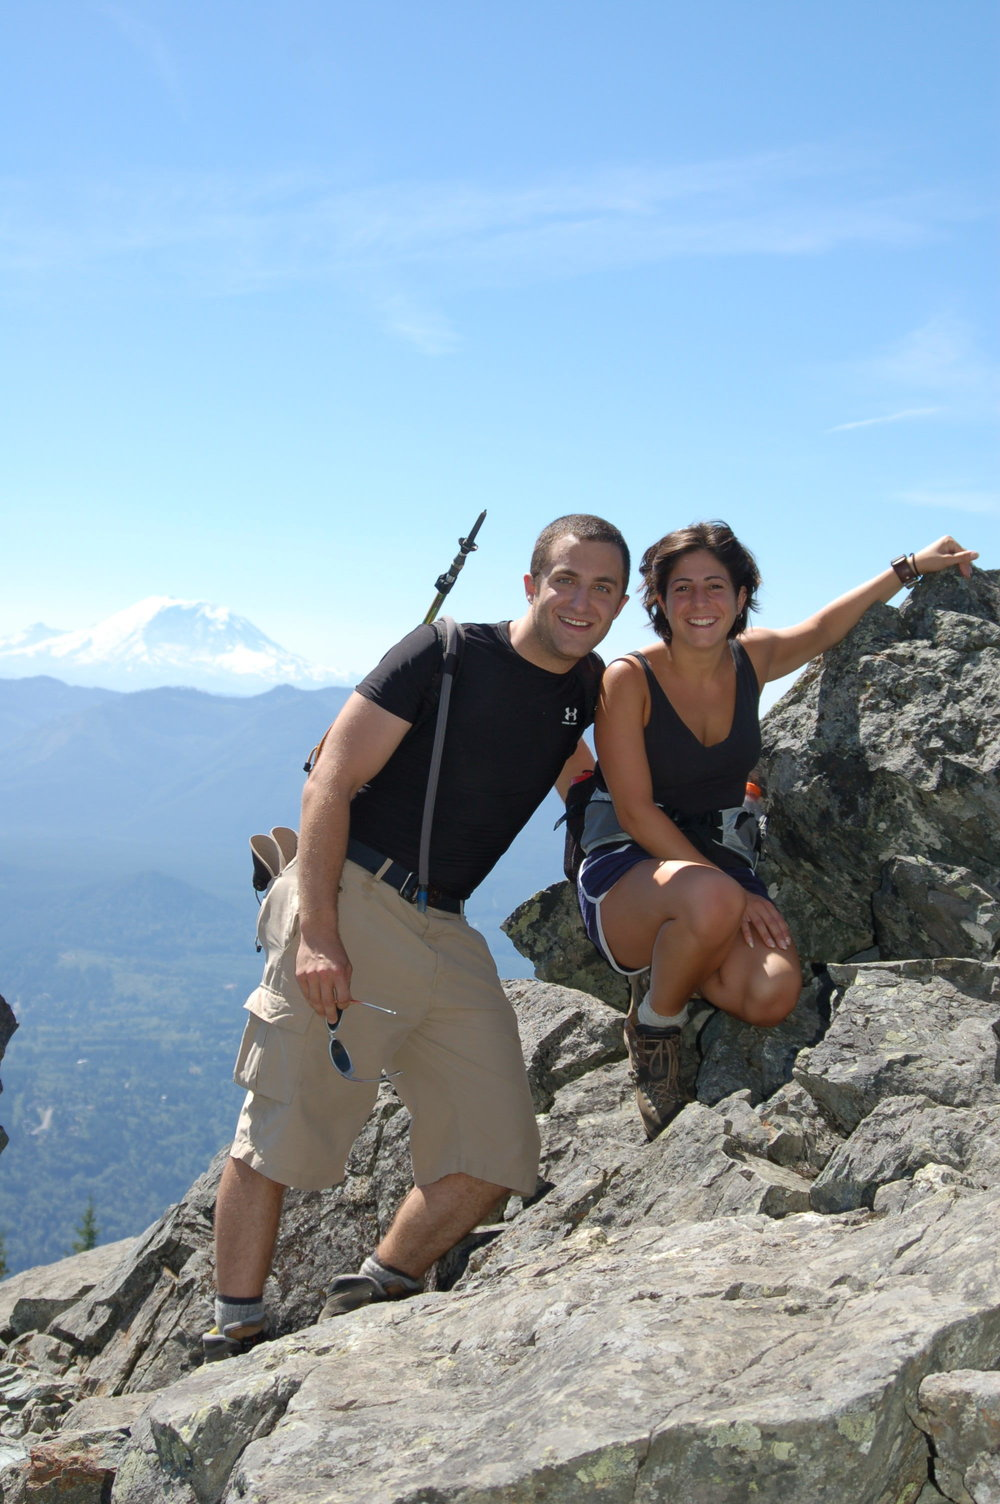 Atop Mt. Si with an appearance of Rainier in the background, 2006